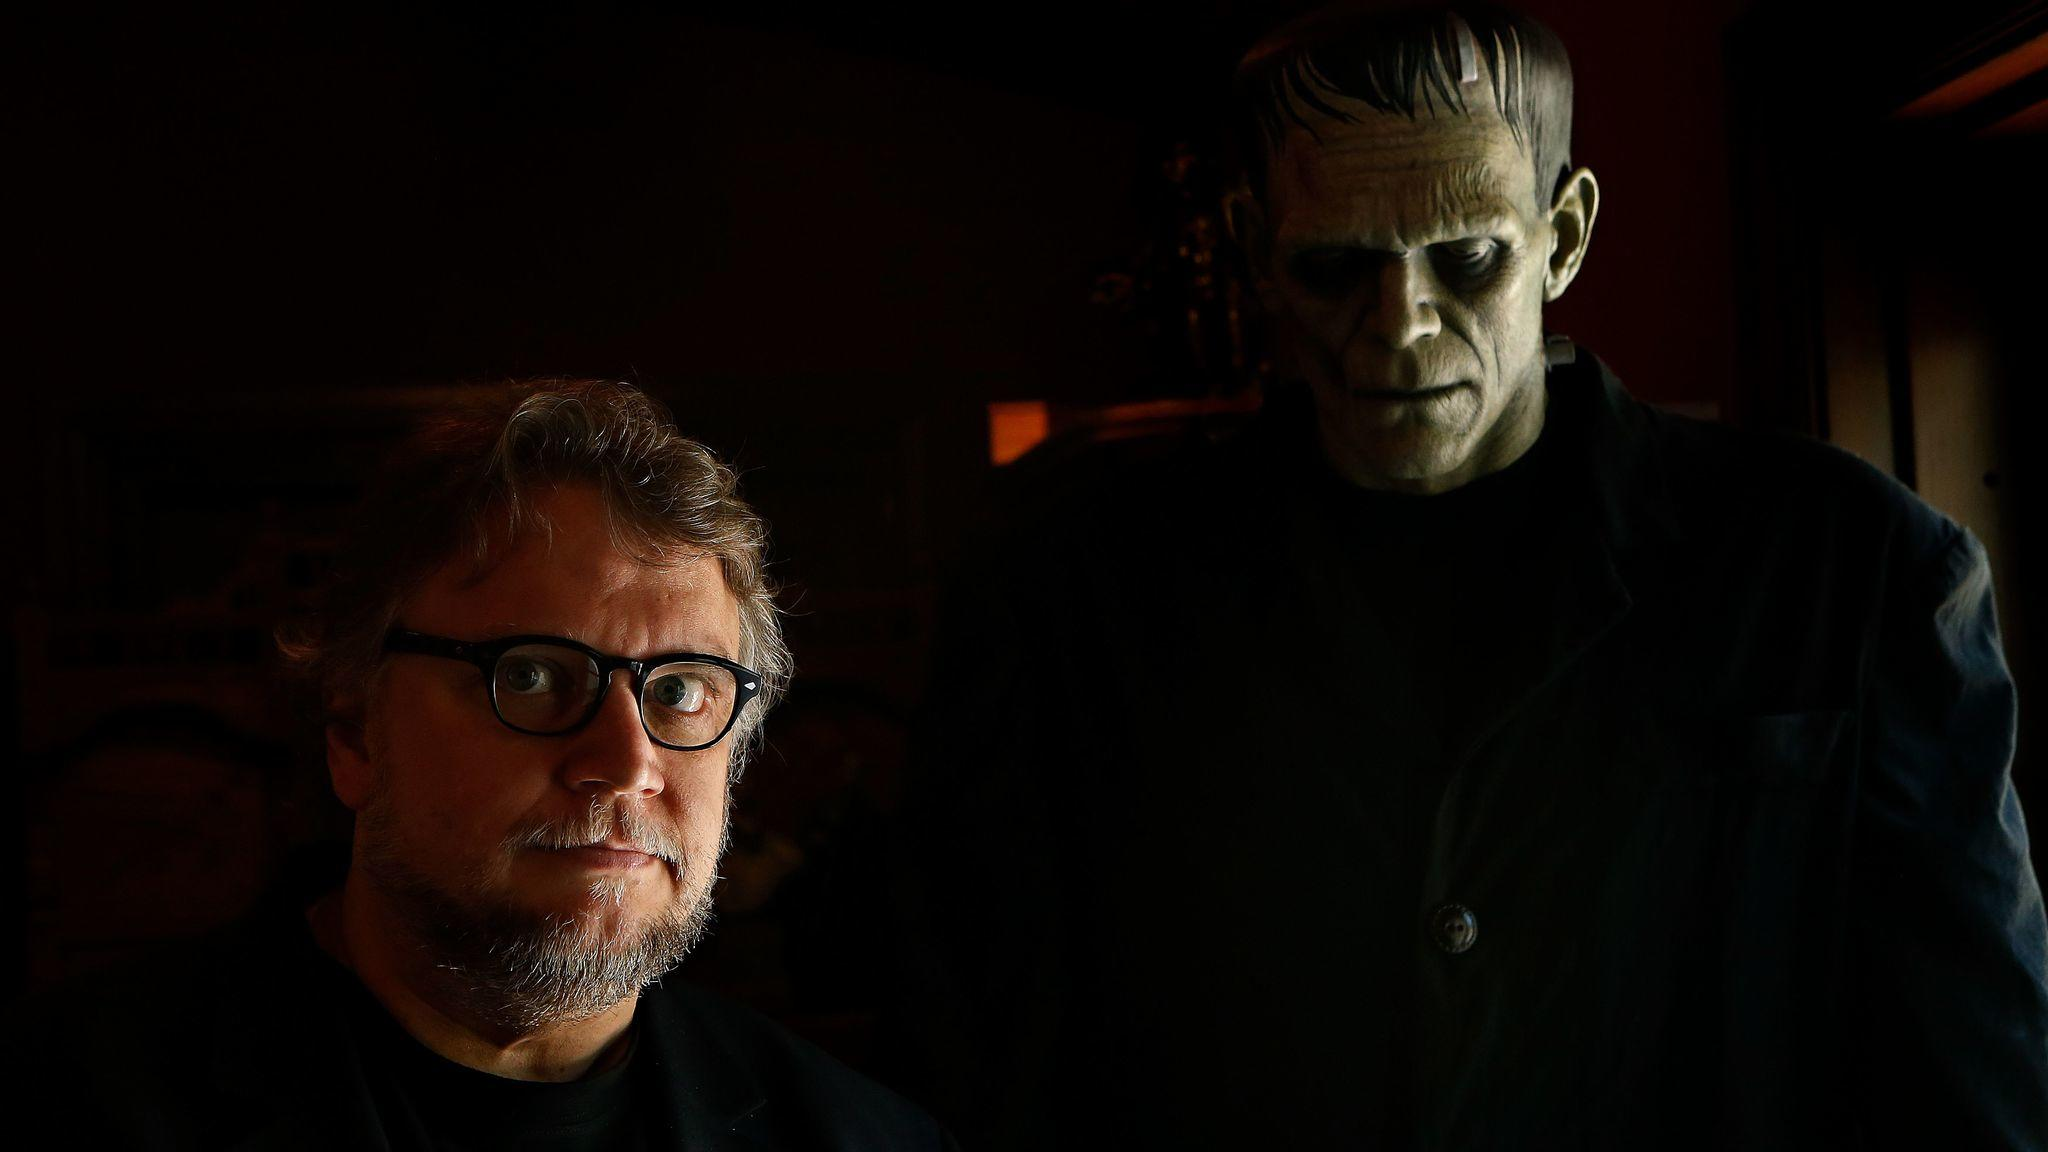 Guillermo del Toro is photographed next to a creature of Frankenstein, on display inside his monster themed Bleak House in Westlake Village on June 13, 2016. (Mel Melcon / Los Angeles Times)